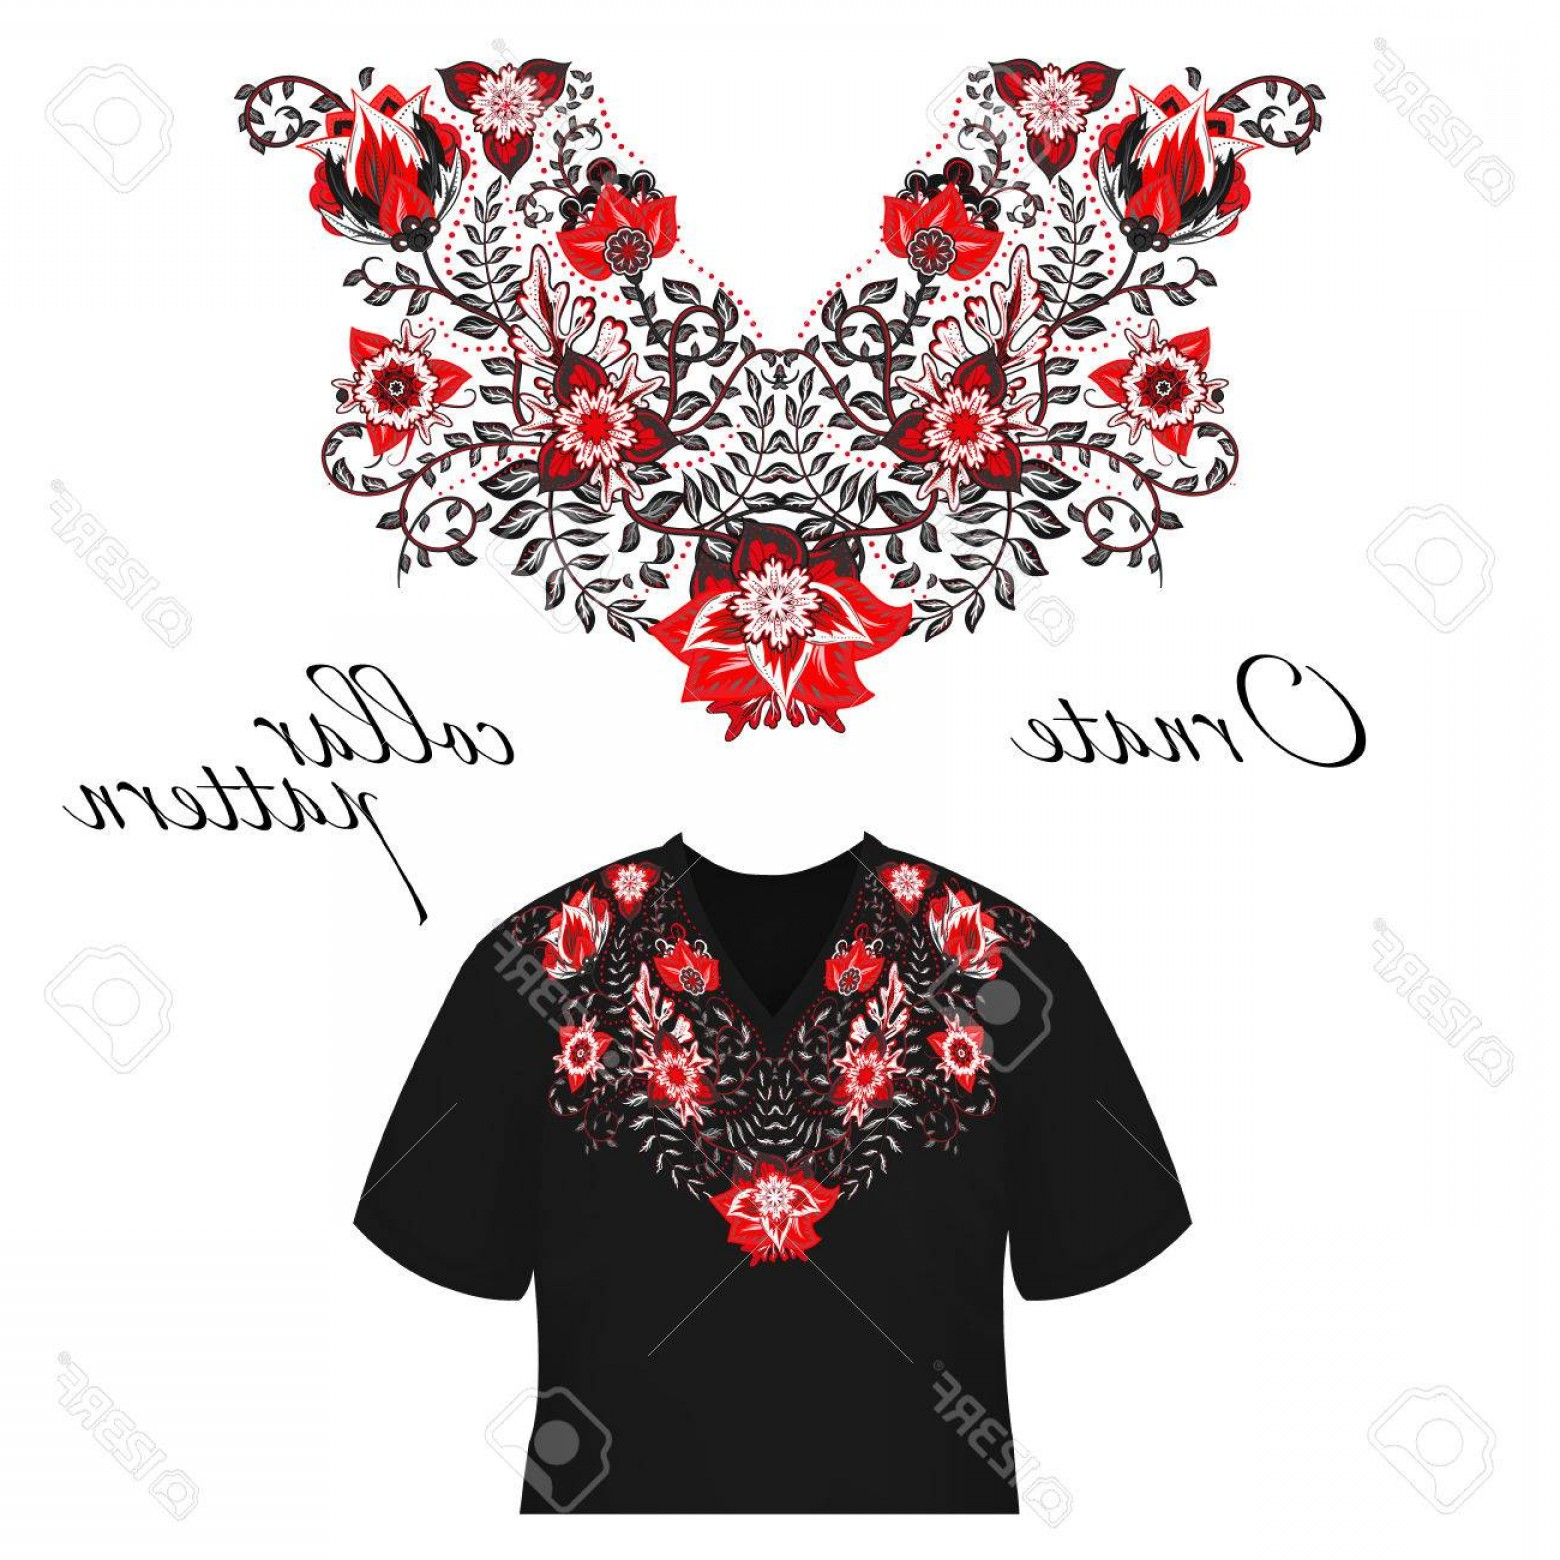 Active Border Vector: Photostock Vector Vector Design For Collar Shirts Shirts Blouses Colorful Ethnic Flowers Neck Paisley Decorative Borde